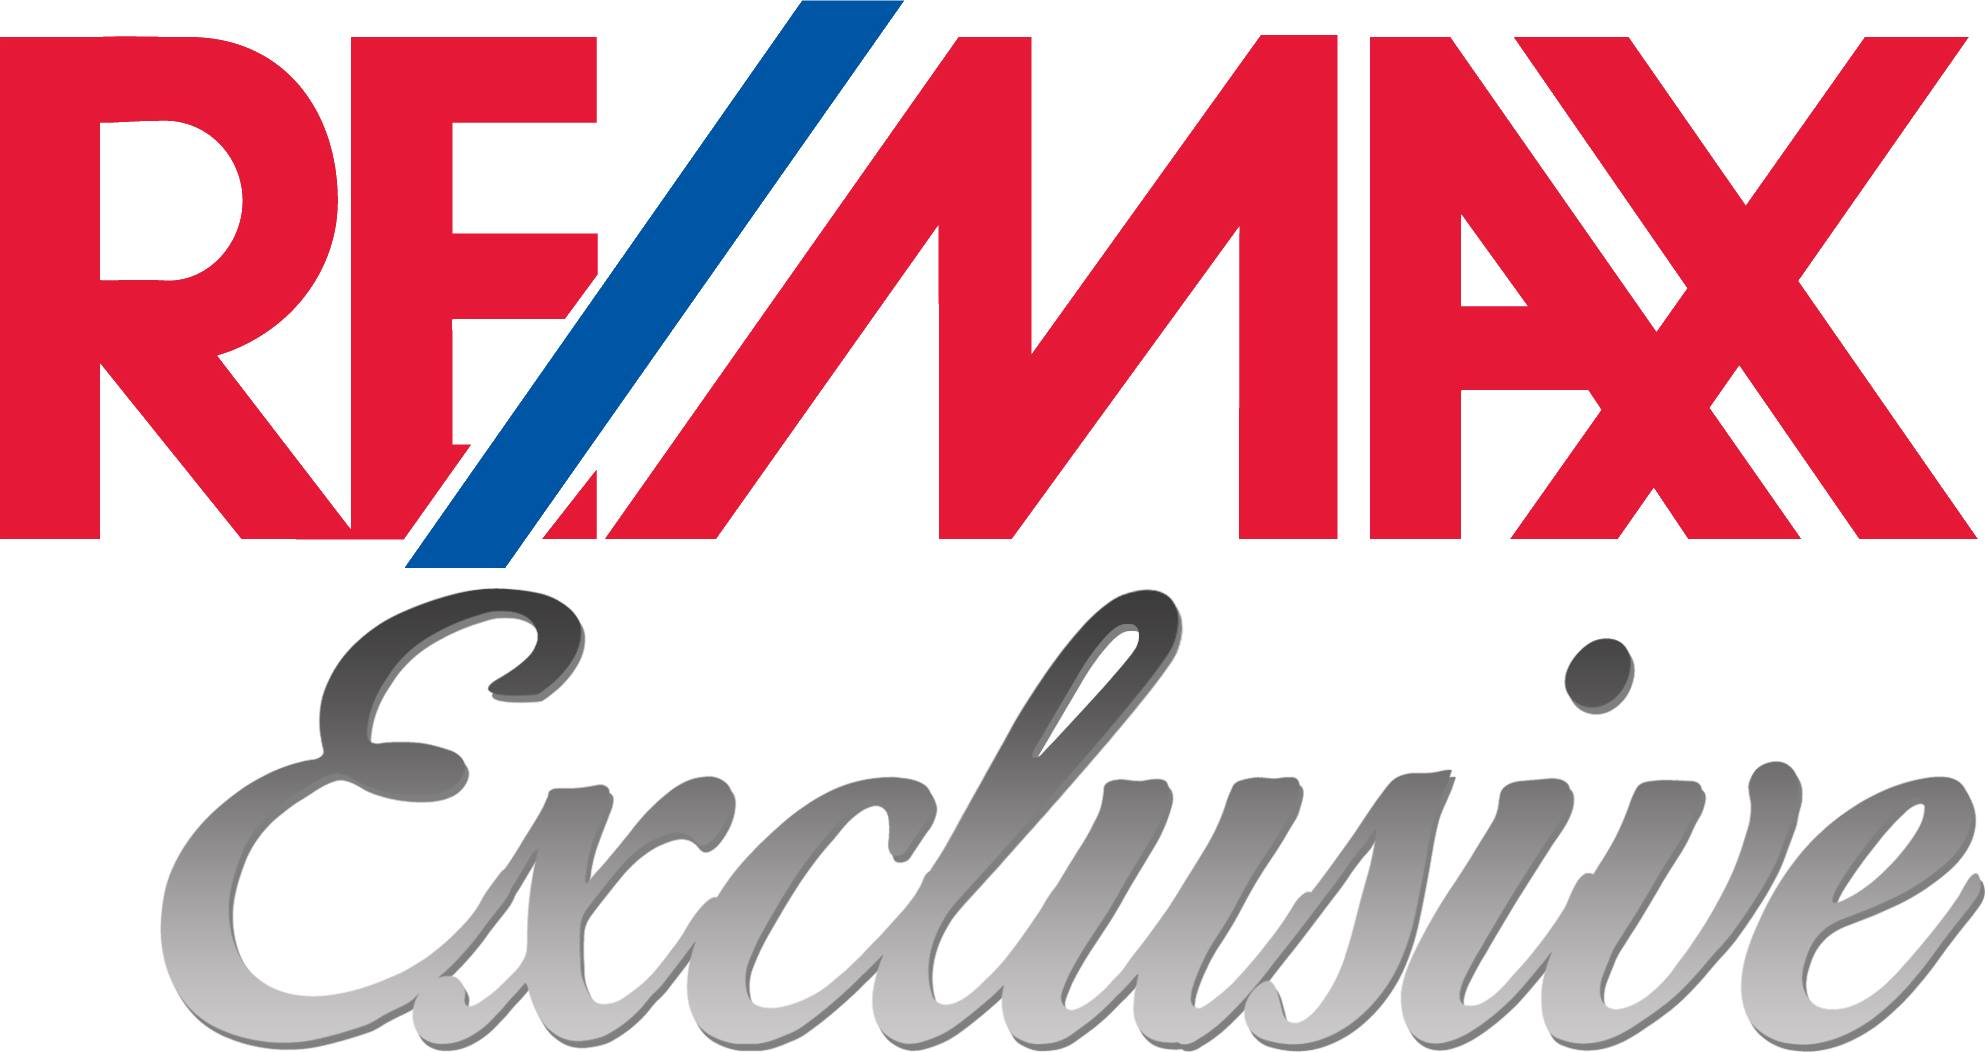 RE/MAX Exclusive logo